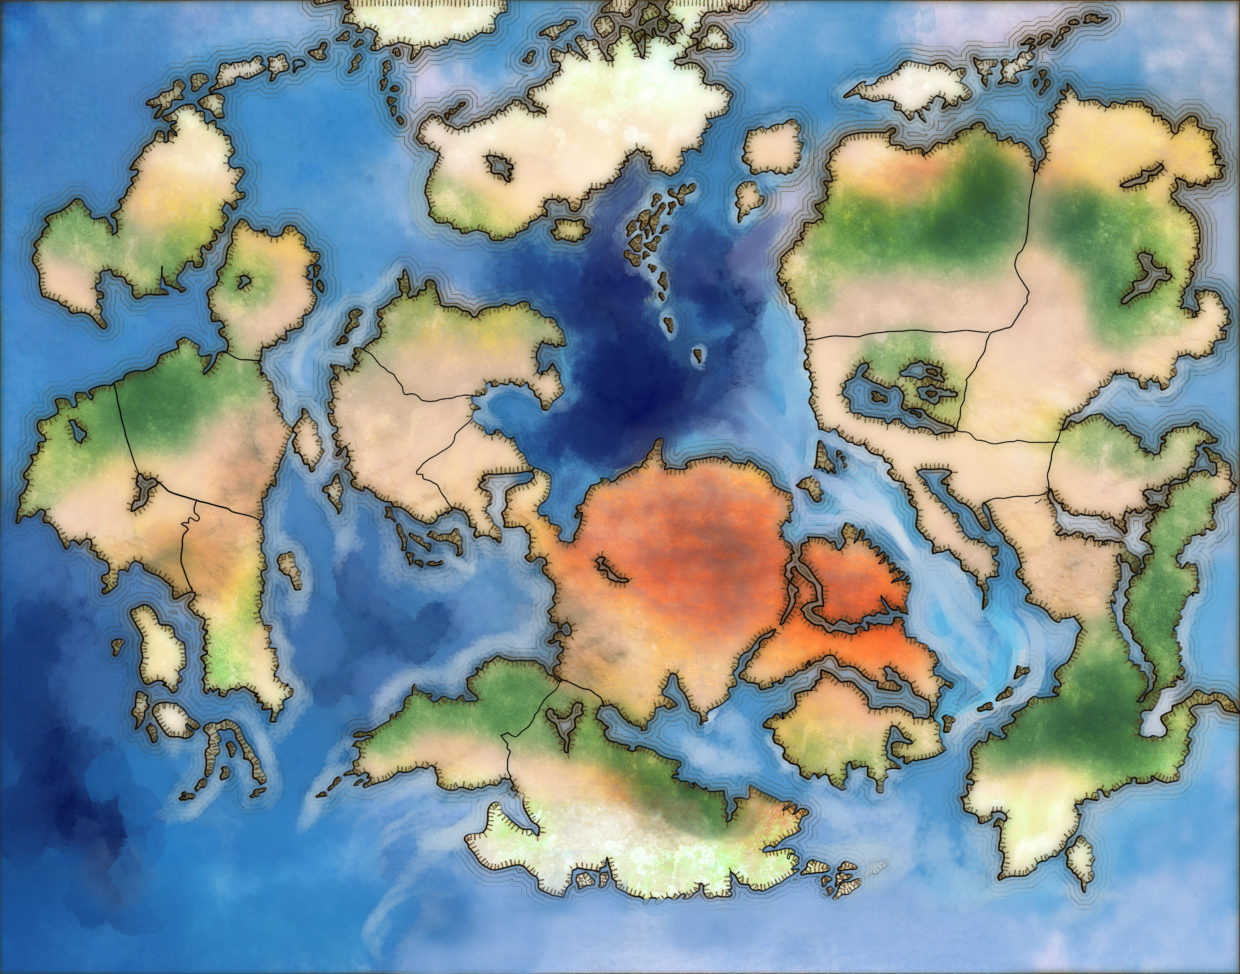 World Map For Fantasy Novel With Colored Ocean And Continents No - World map no labels